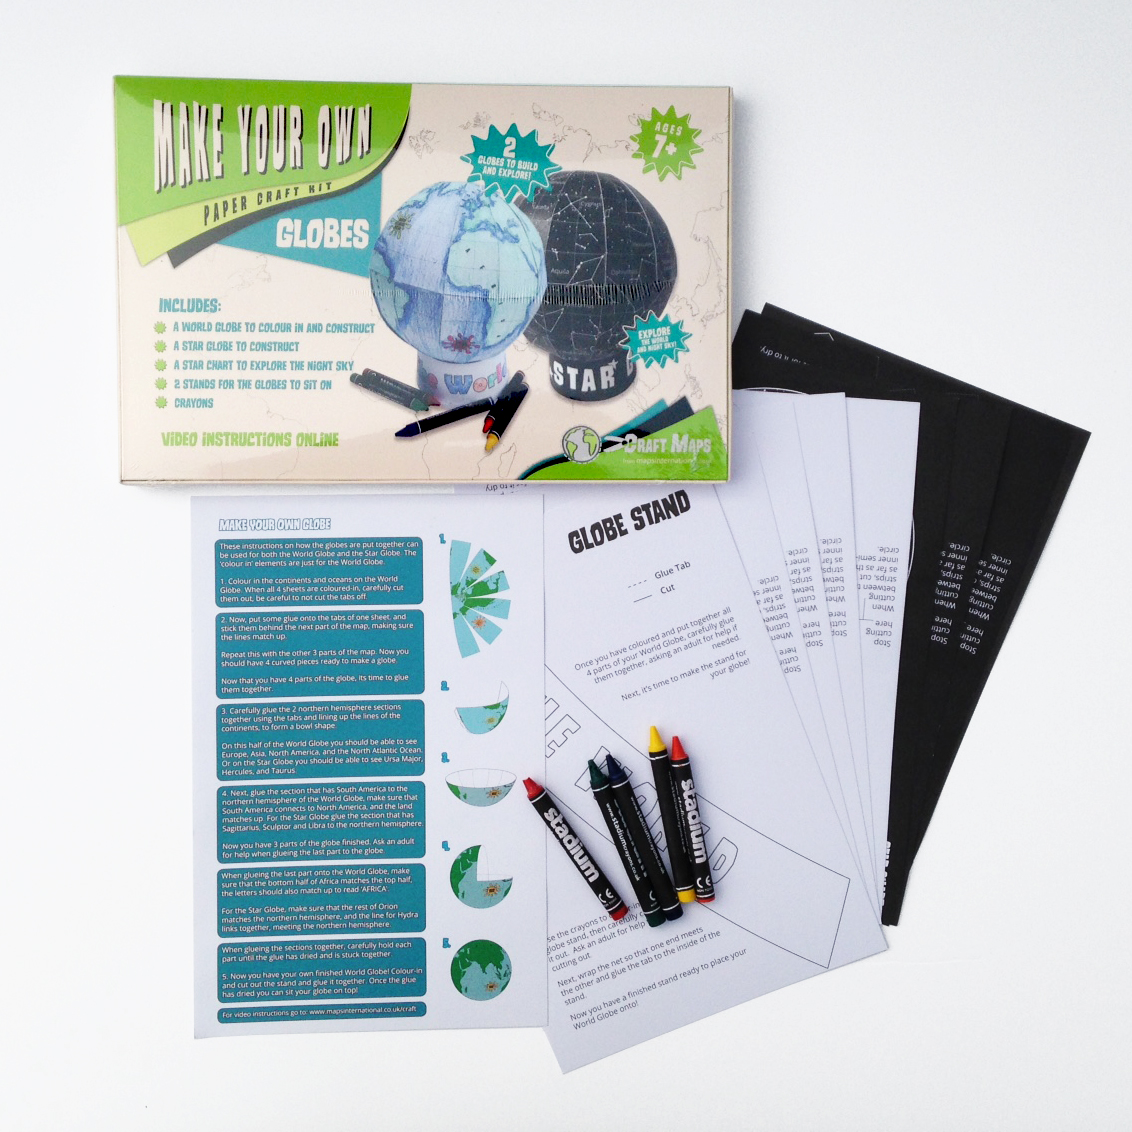 Make Your Own Globes Kit